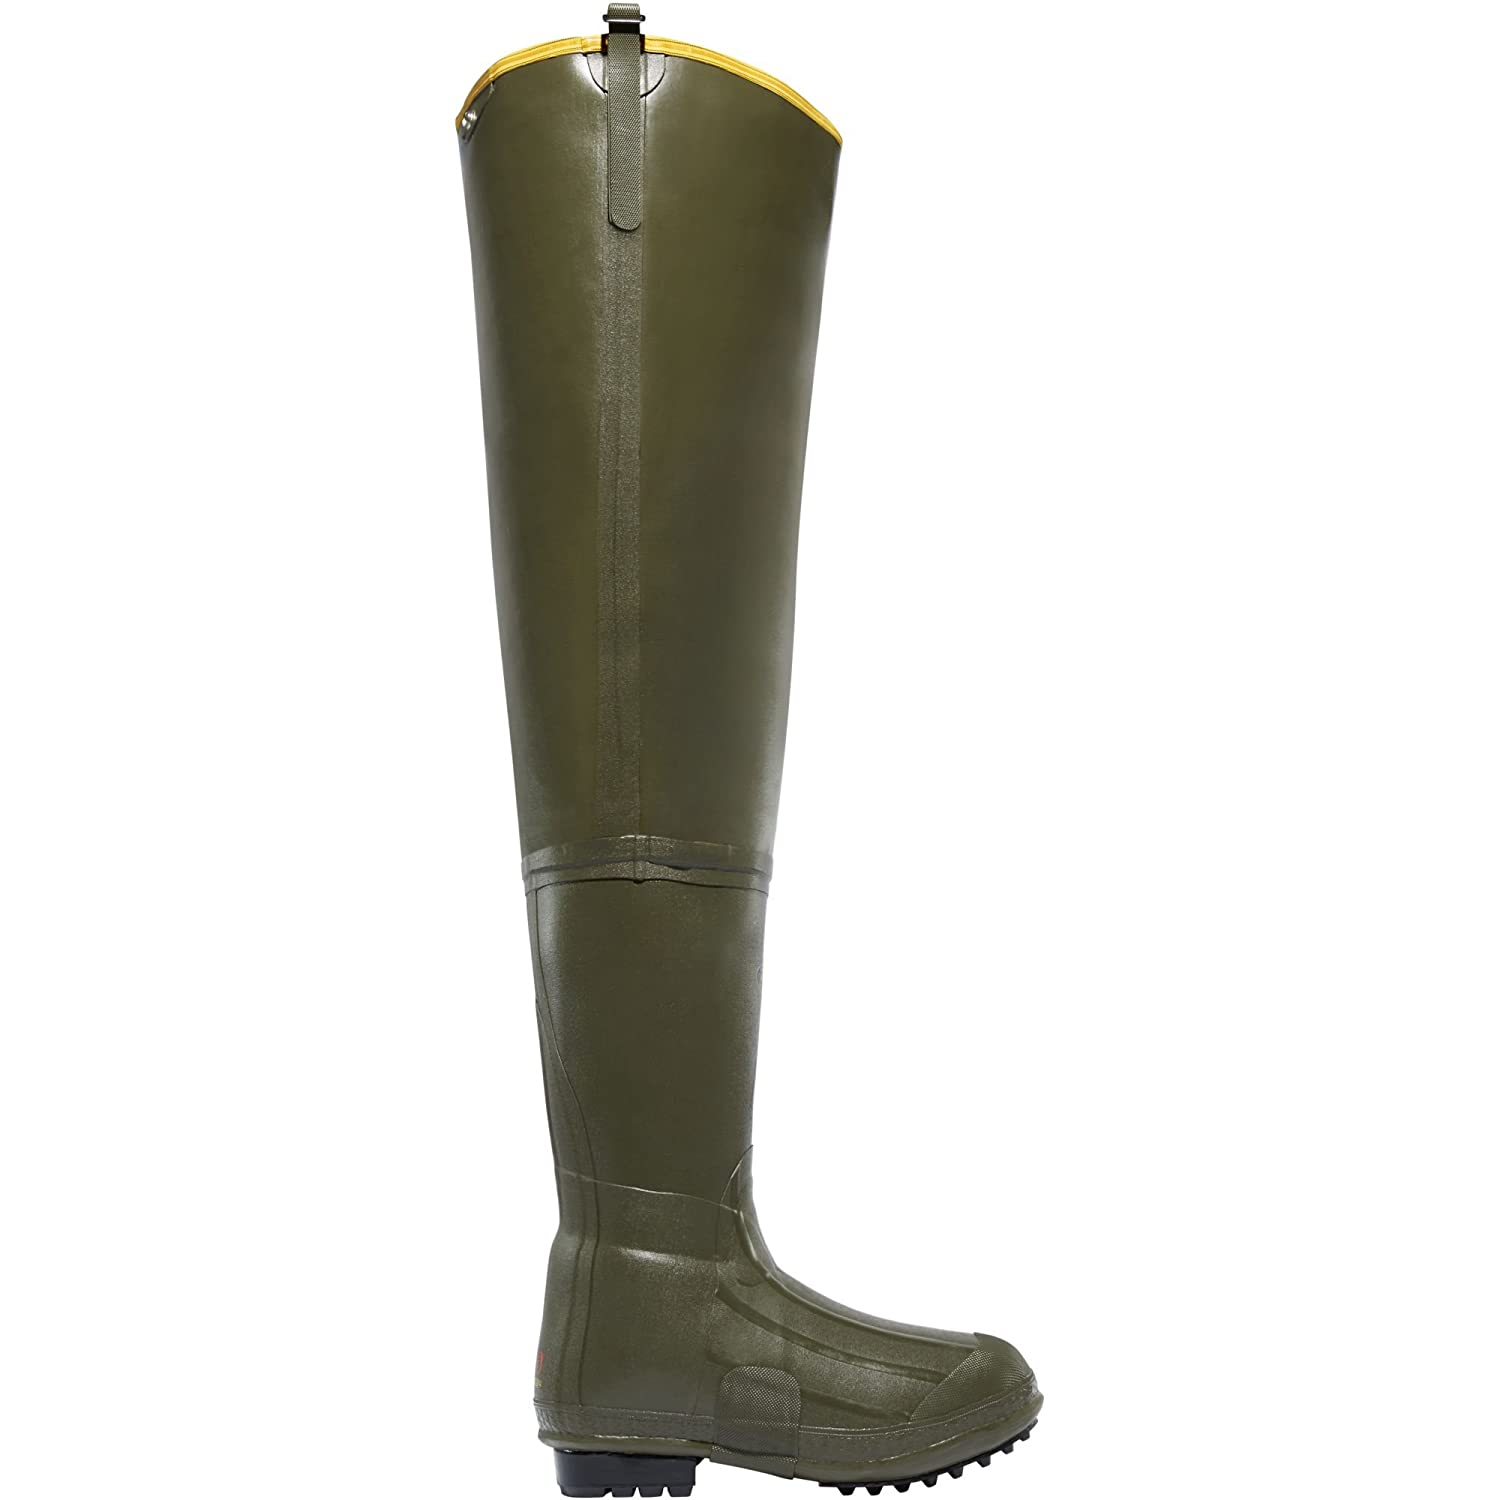 "Big Chief 32"" OD Green 600G (700001)  Waterproof  Insulated Modern Comfortable Hunting Combat Boot Best For Mud Snow"